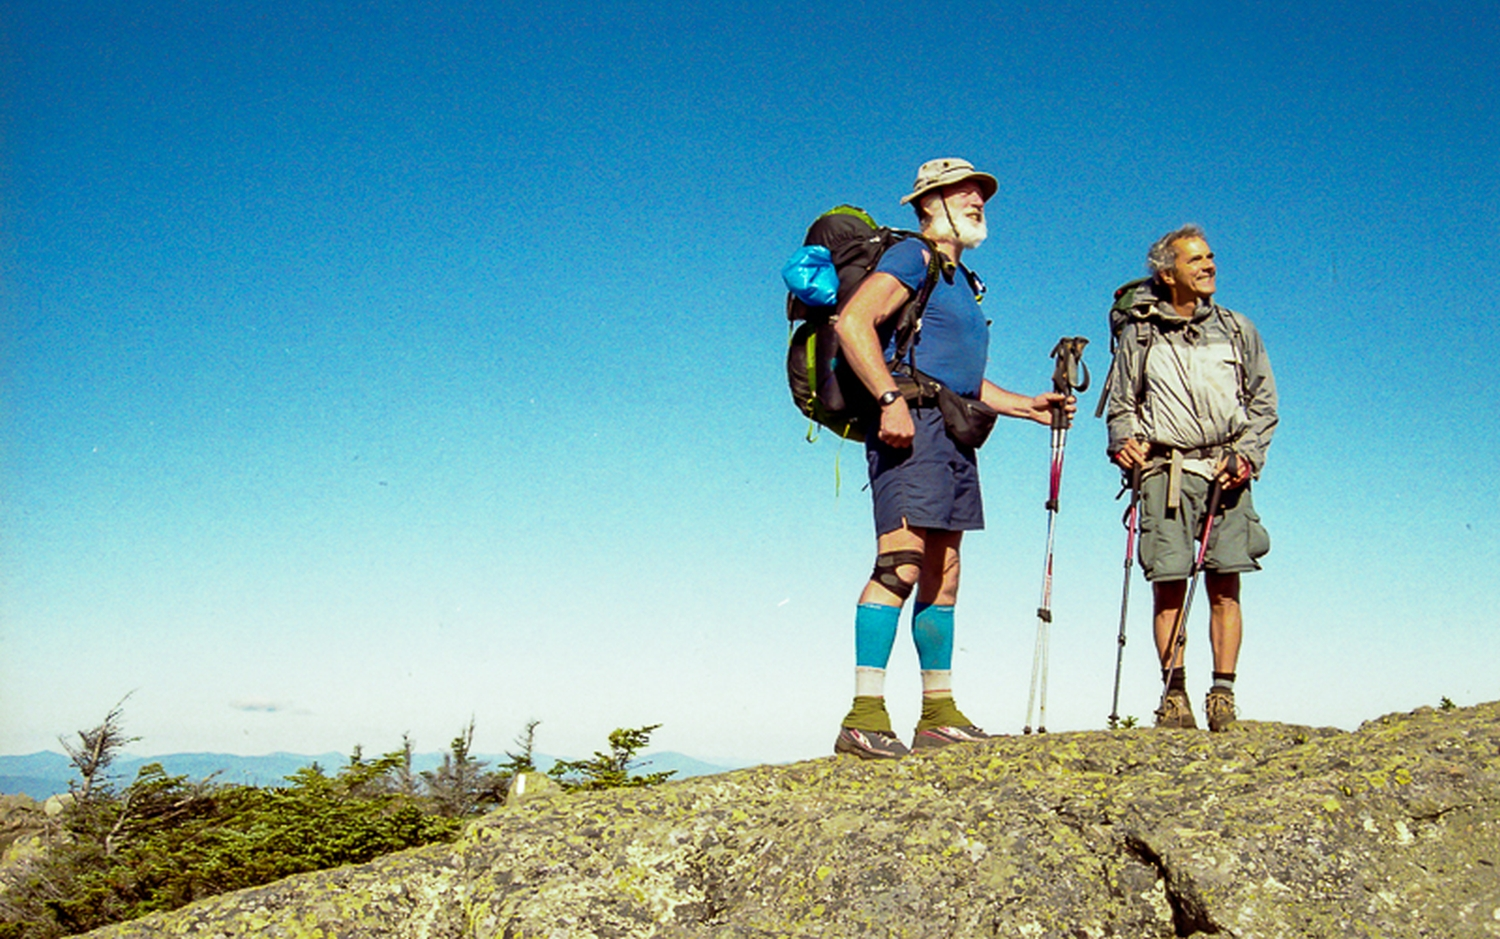 Kimo-sabi and a section hiker in Maine.